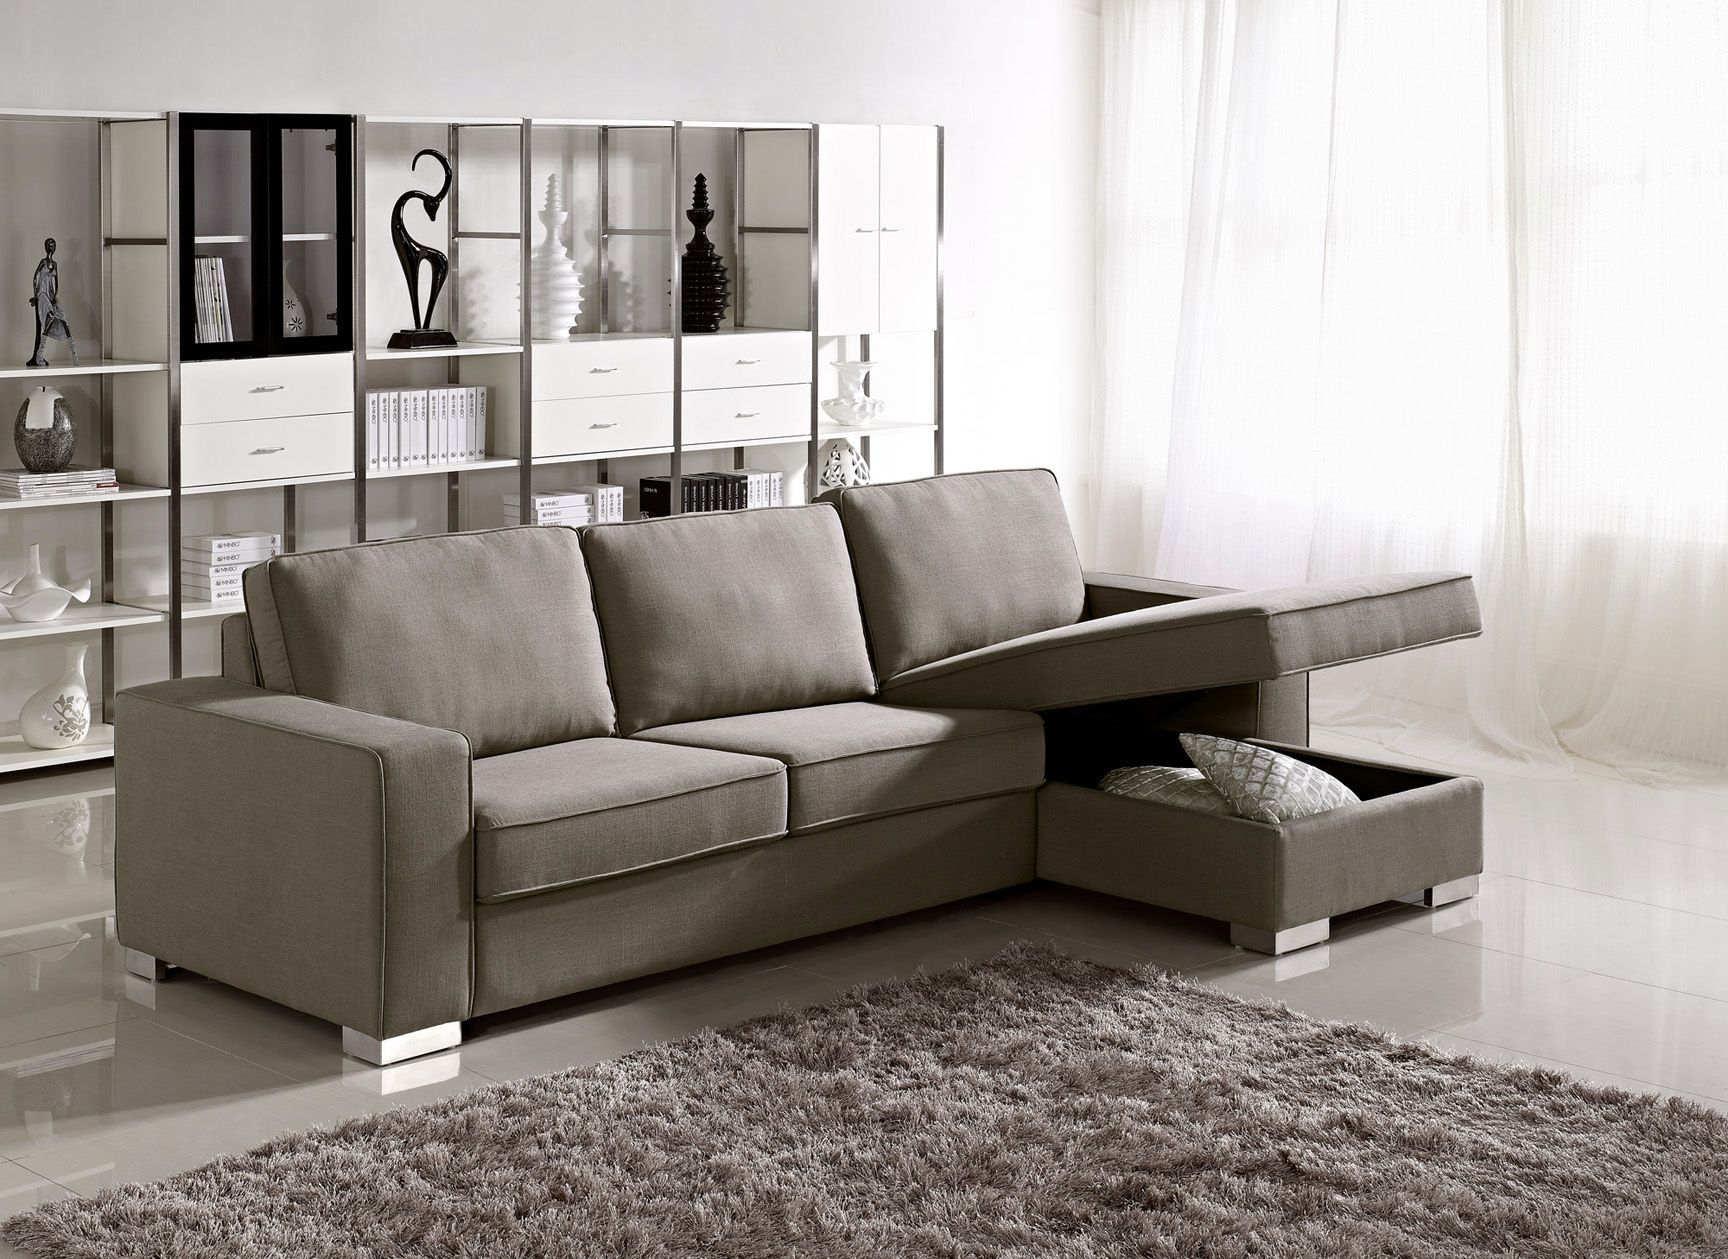 The best apartment sectional sofas solving function and - Best sectionals for apartments ...